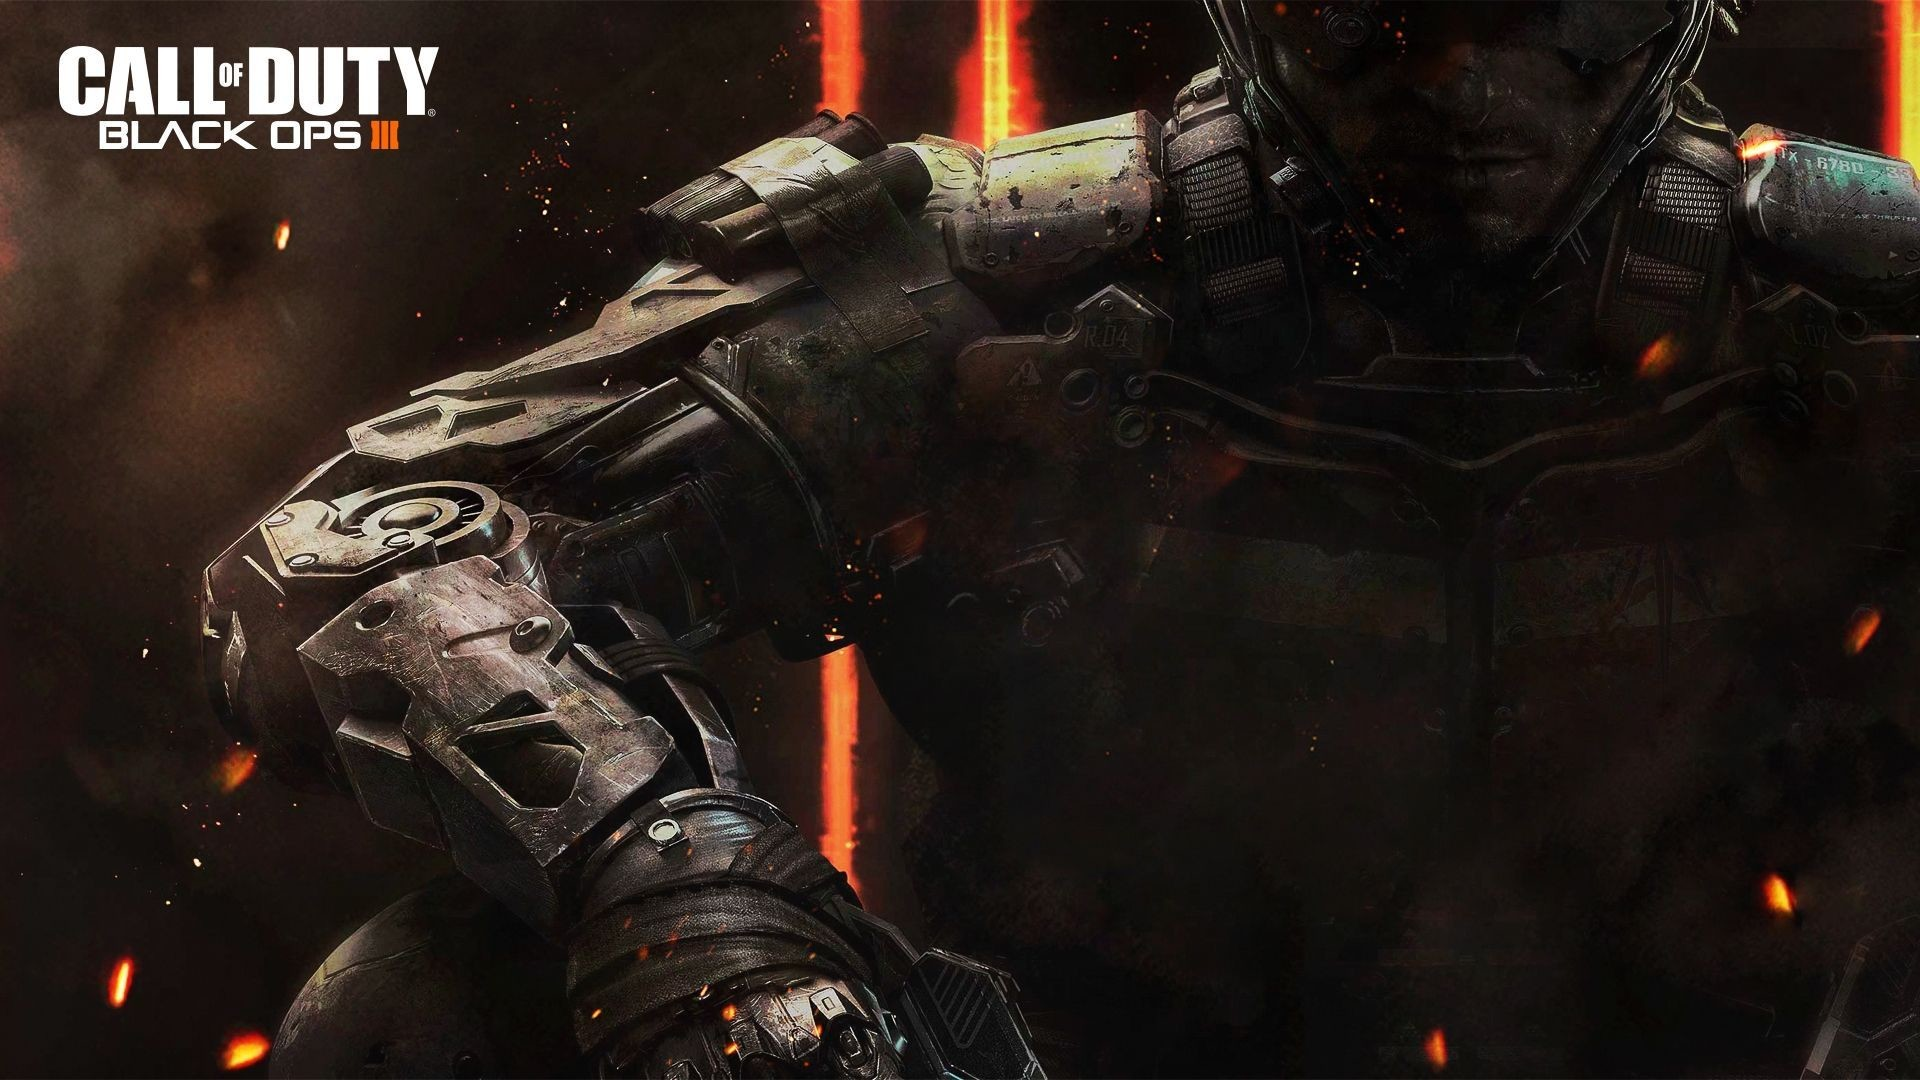 Black Ops 3 Wallpapers Bo3 Free Download Unofficial Call Of Duty Black Ops 3 Render 1920x1080 Download Hd Wallpaper Wallpapertip